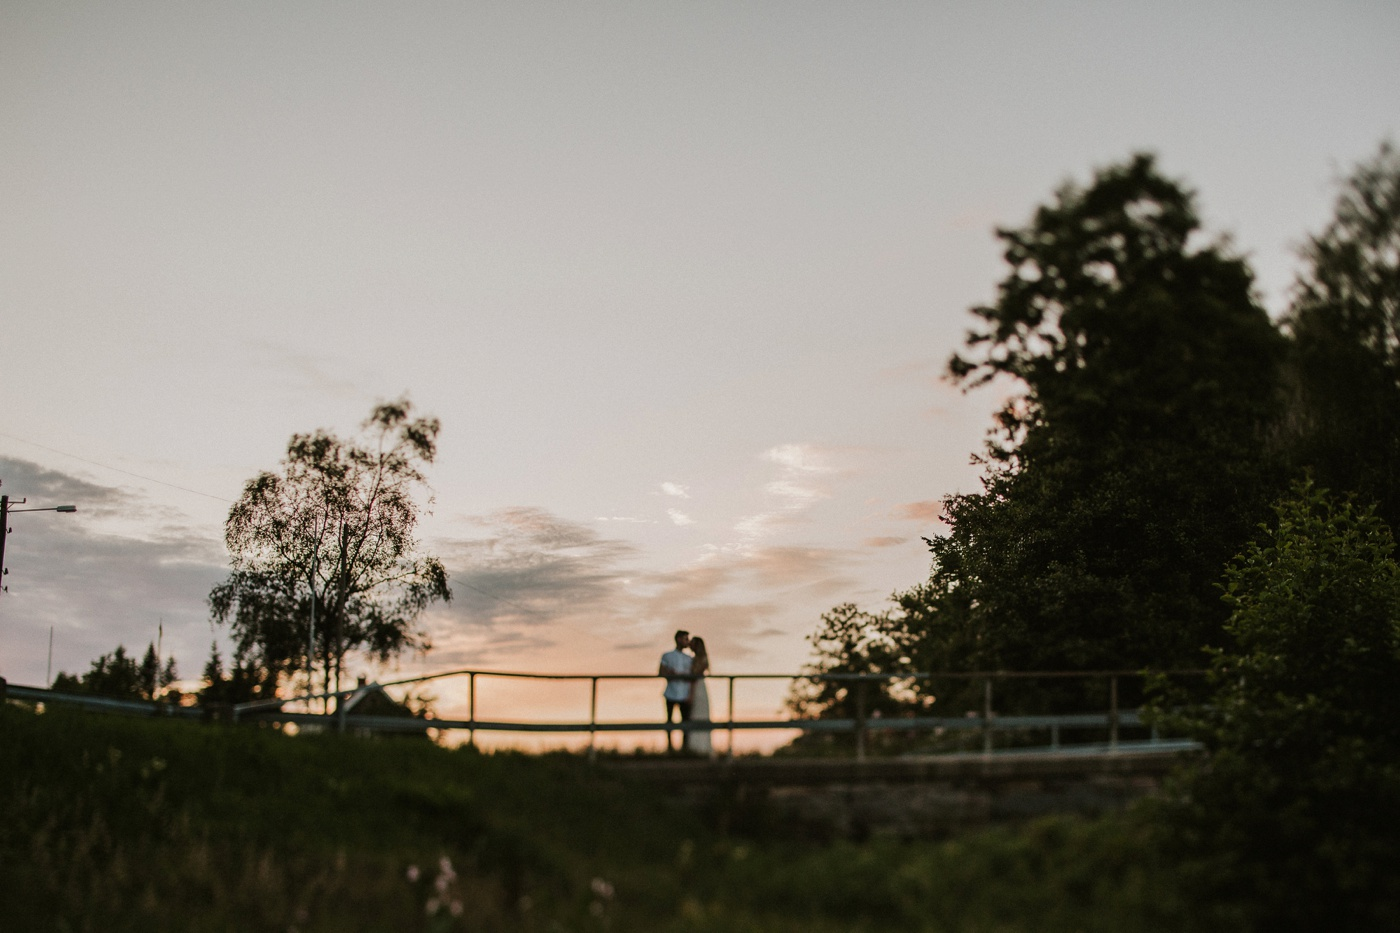 natalie-wictor_swedish-relaxed-candid-quirky-fun-engagement-session_24